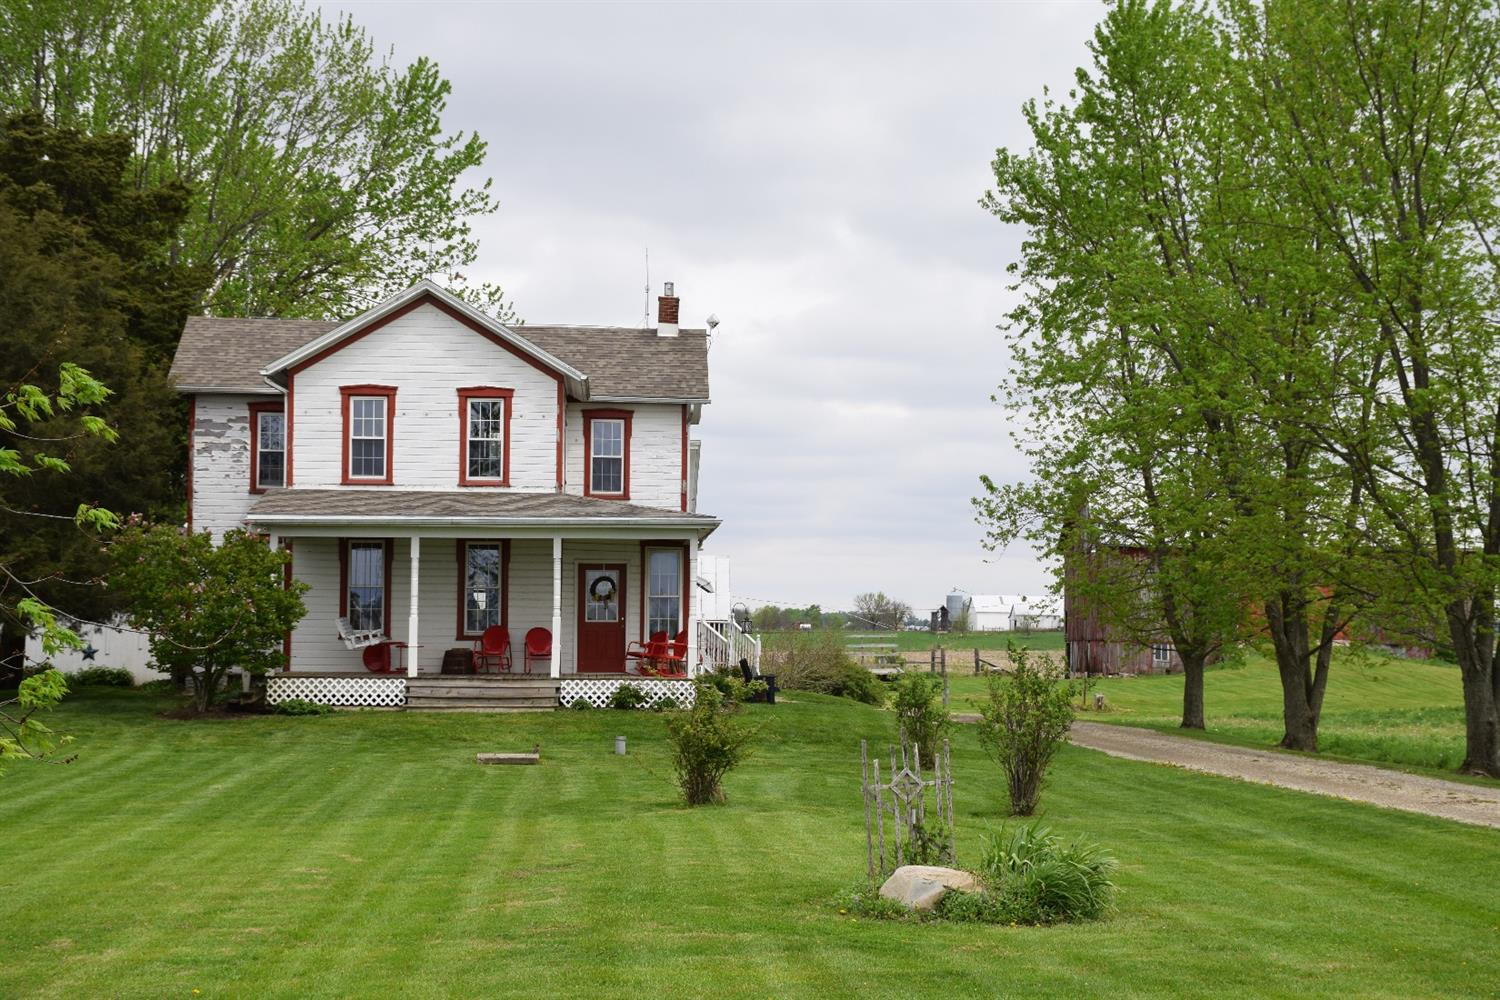 8879 Snyder Rd Preble County, OH